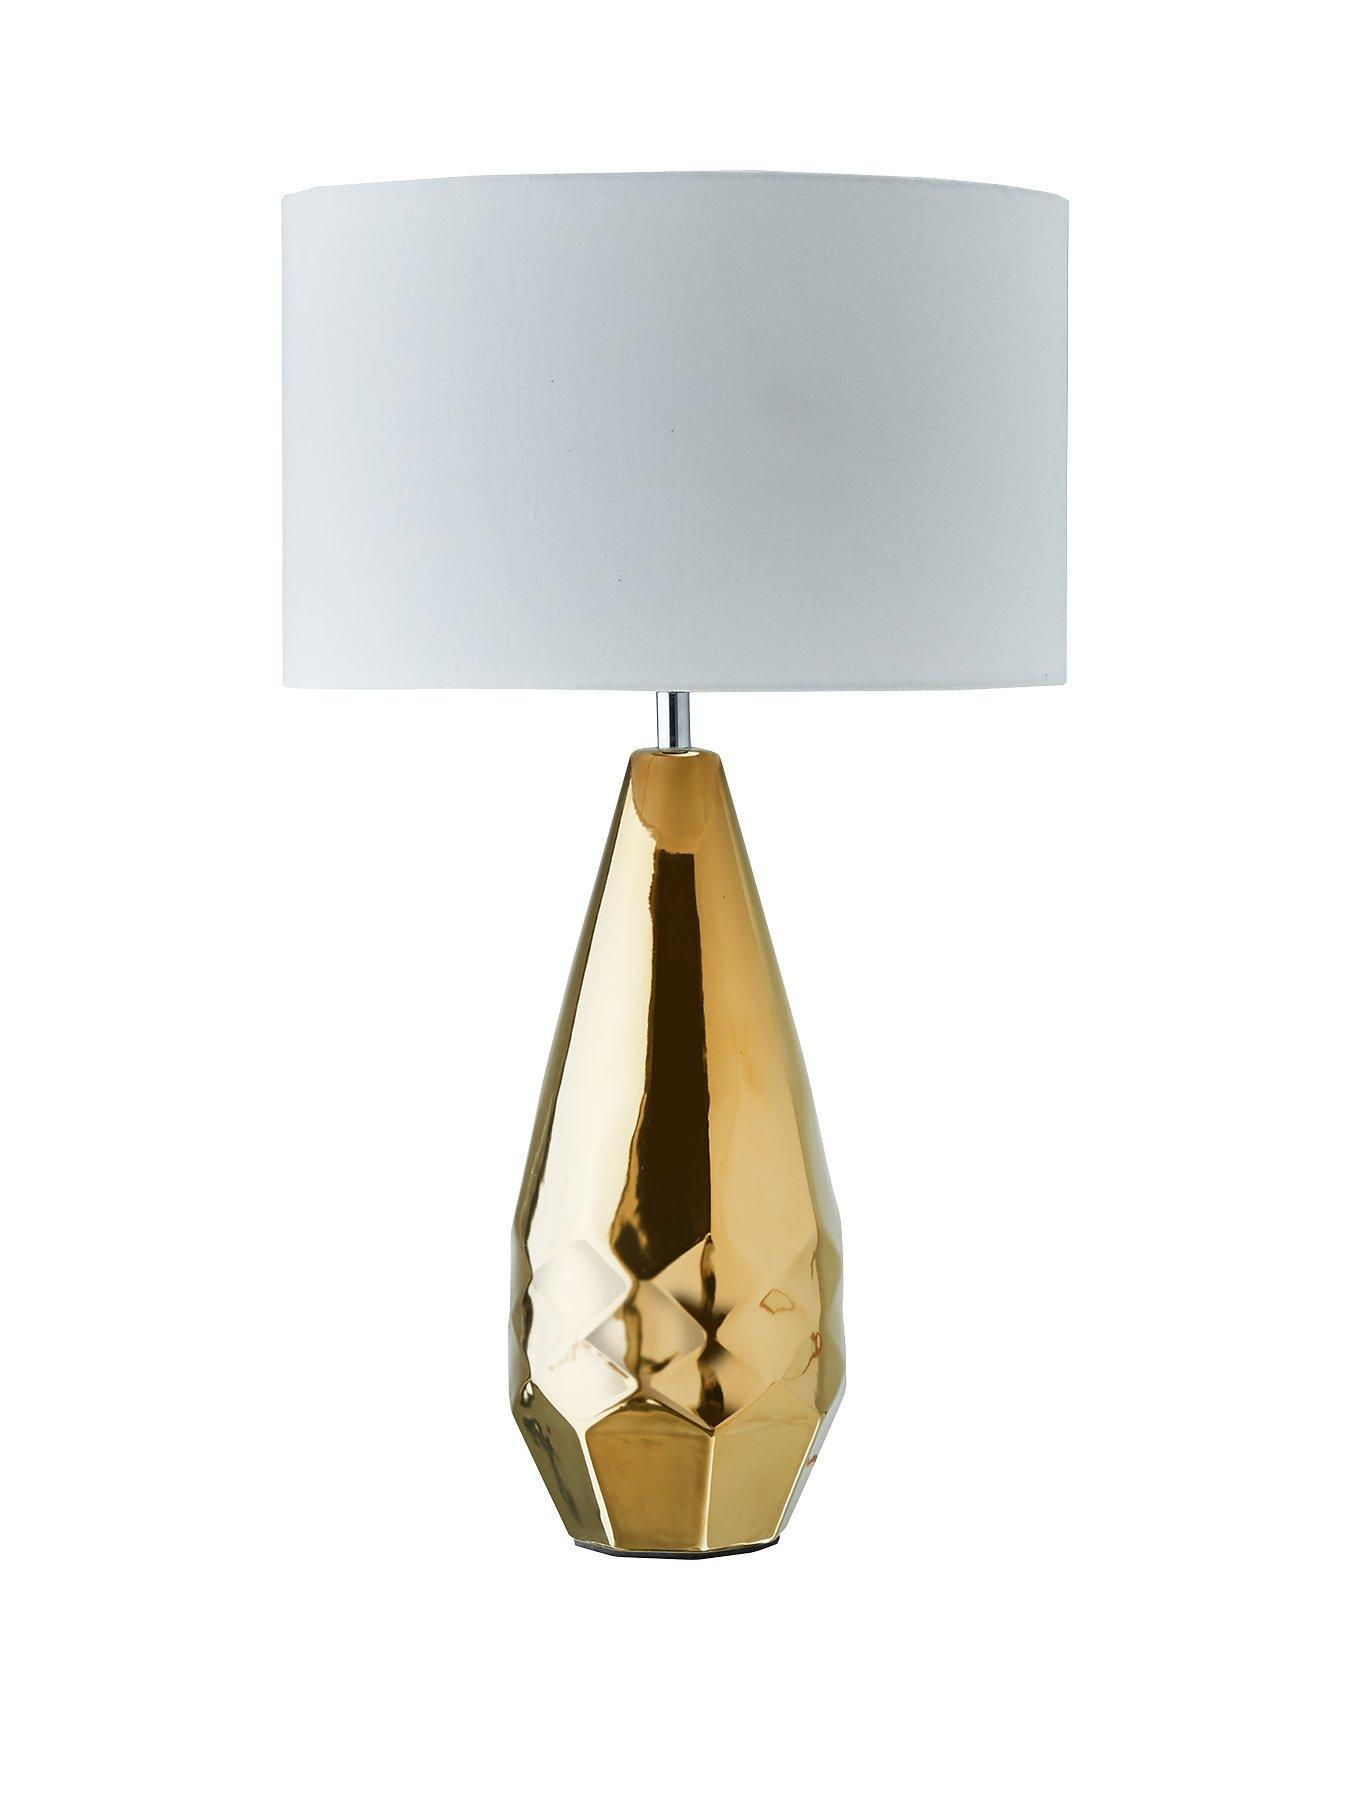 Gold and white geo lamp - home accessories inspiration| Today we're talking inspiration for adding green to your living room. Green is a really versatile colour to decorate your home with. But, which colours and tones work well? What kind of accessories work with green? This post gives you ideas for pulling together an elegant green colour palette and pieces for your home. Read more: kittyandb.com #homeaccessories #lamp #goldandwhite #interiordecoratinginspiration